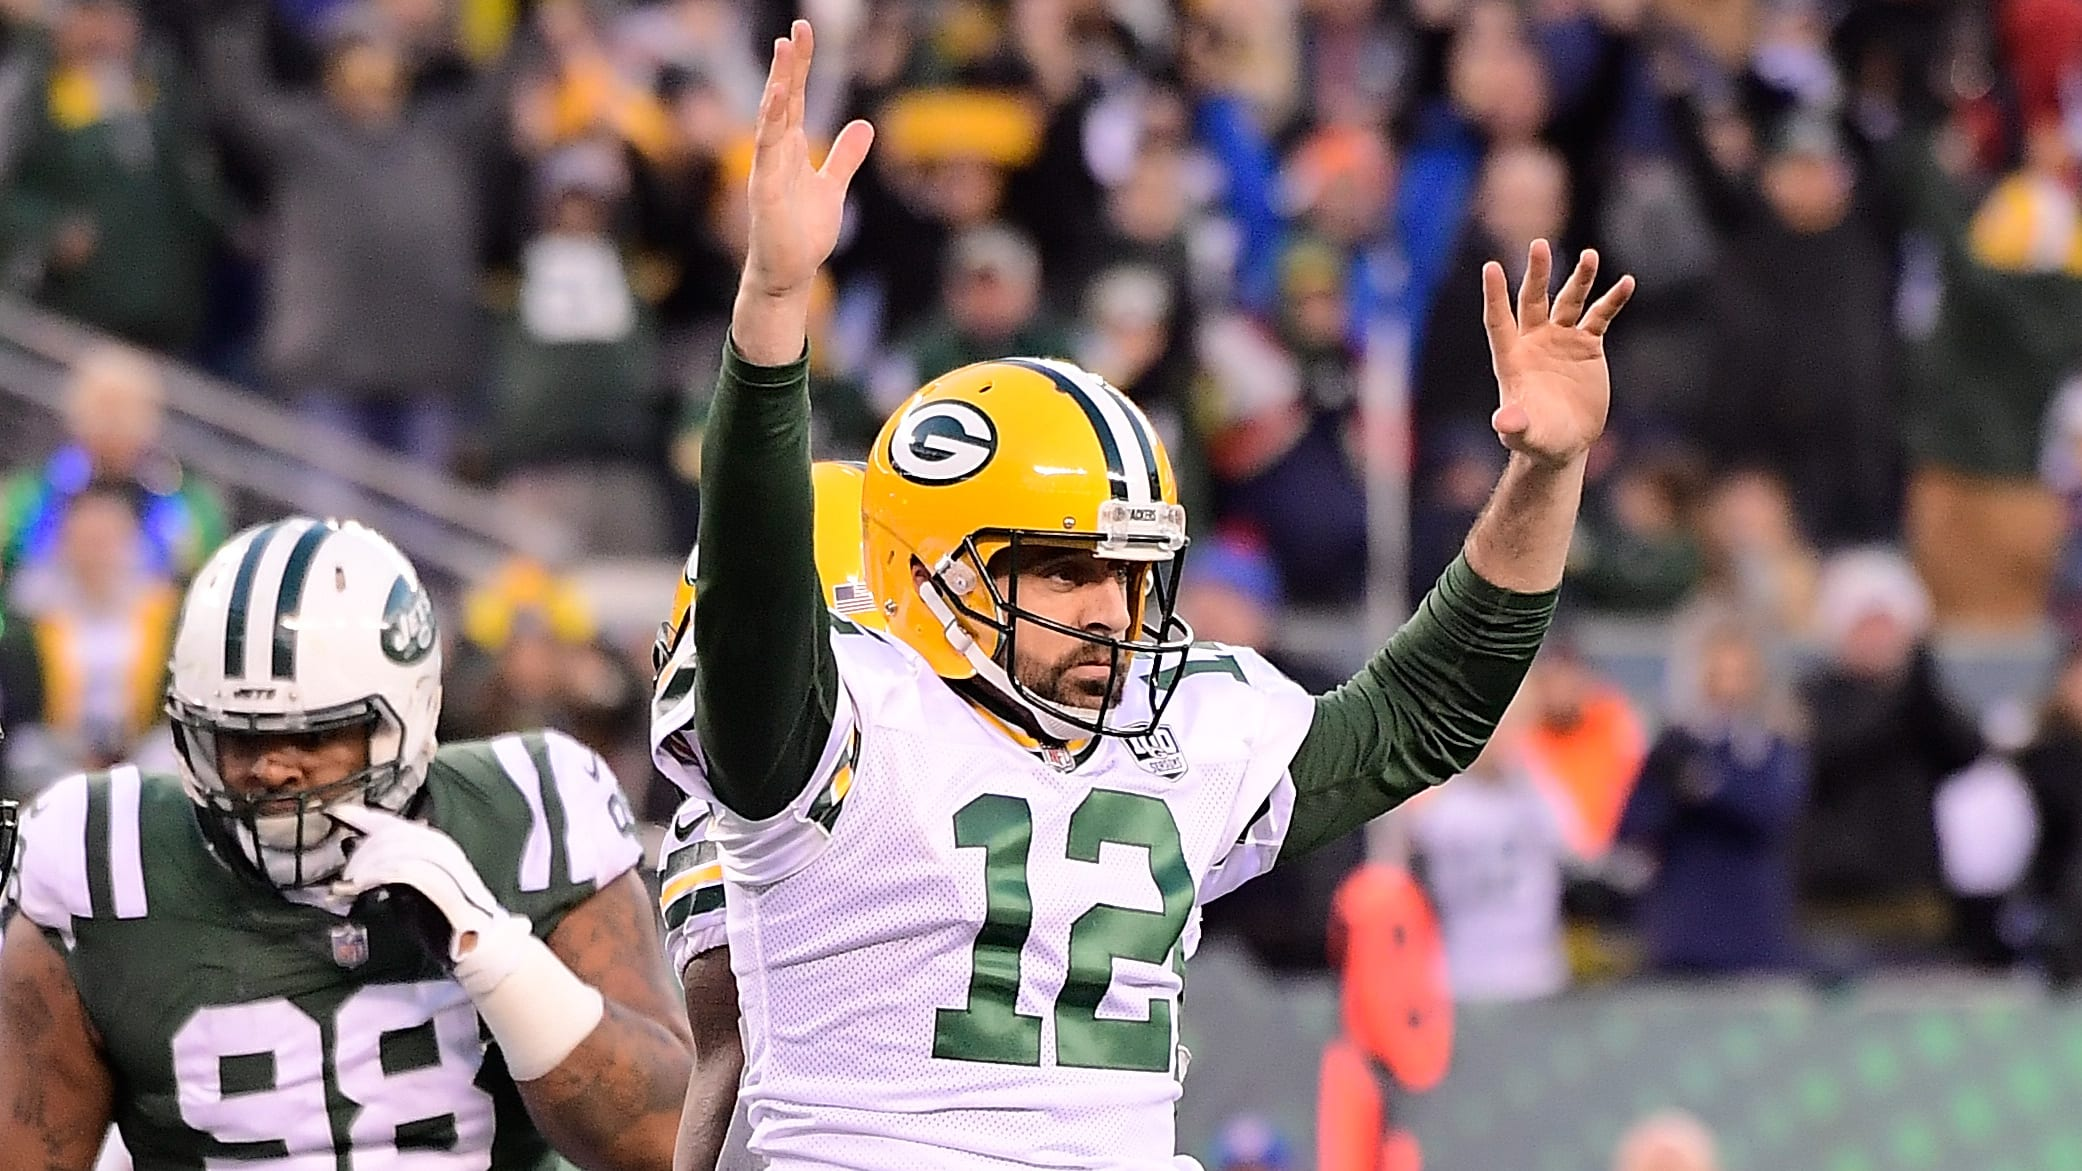 EAST RUTHERFORD, NJ - DECEMBER 23: Aaron Rodgers #12 of the Green Bay Packers celebrates after scoring a 1 yard touchdown to put them ahead 38-35 against the New York Jets during the fourth quarter at MetLife Stadium on December 23, 2018 in East Rutherford, New Jersey.  (Photo by Steven Ryan/Getty Images)